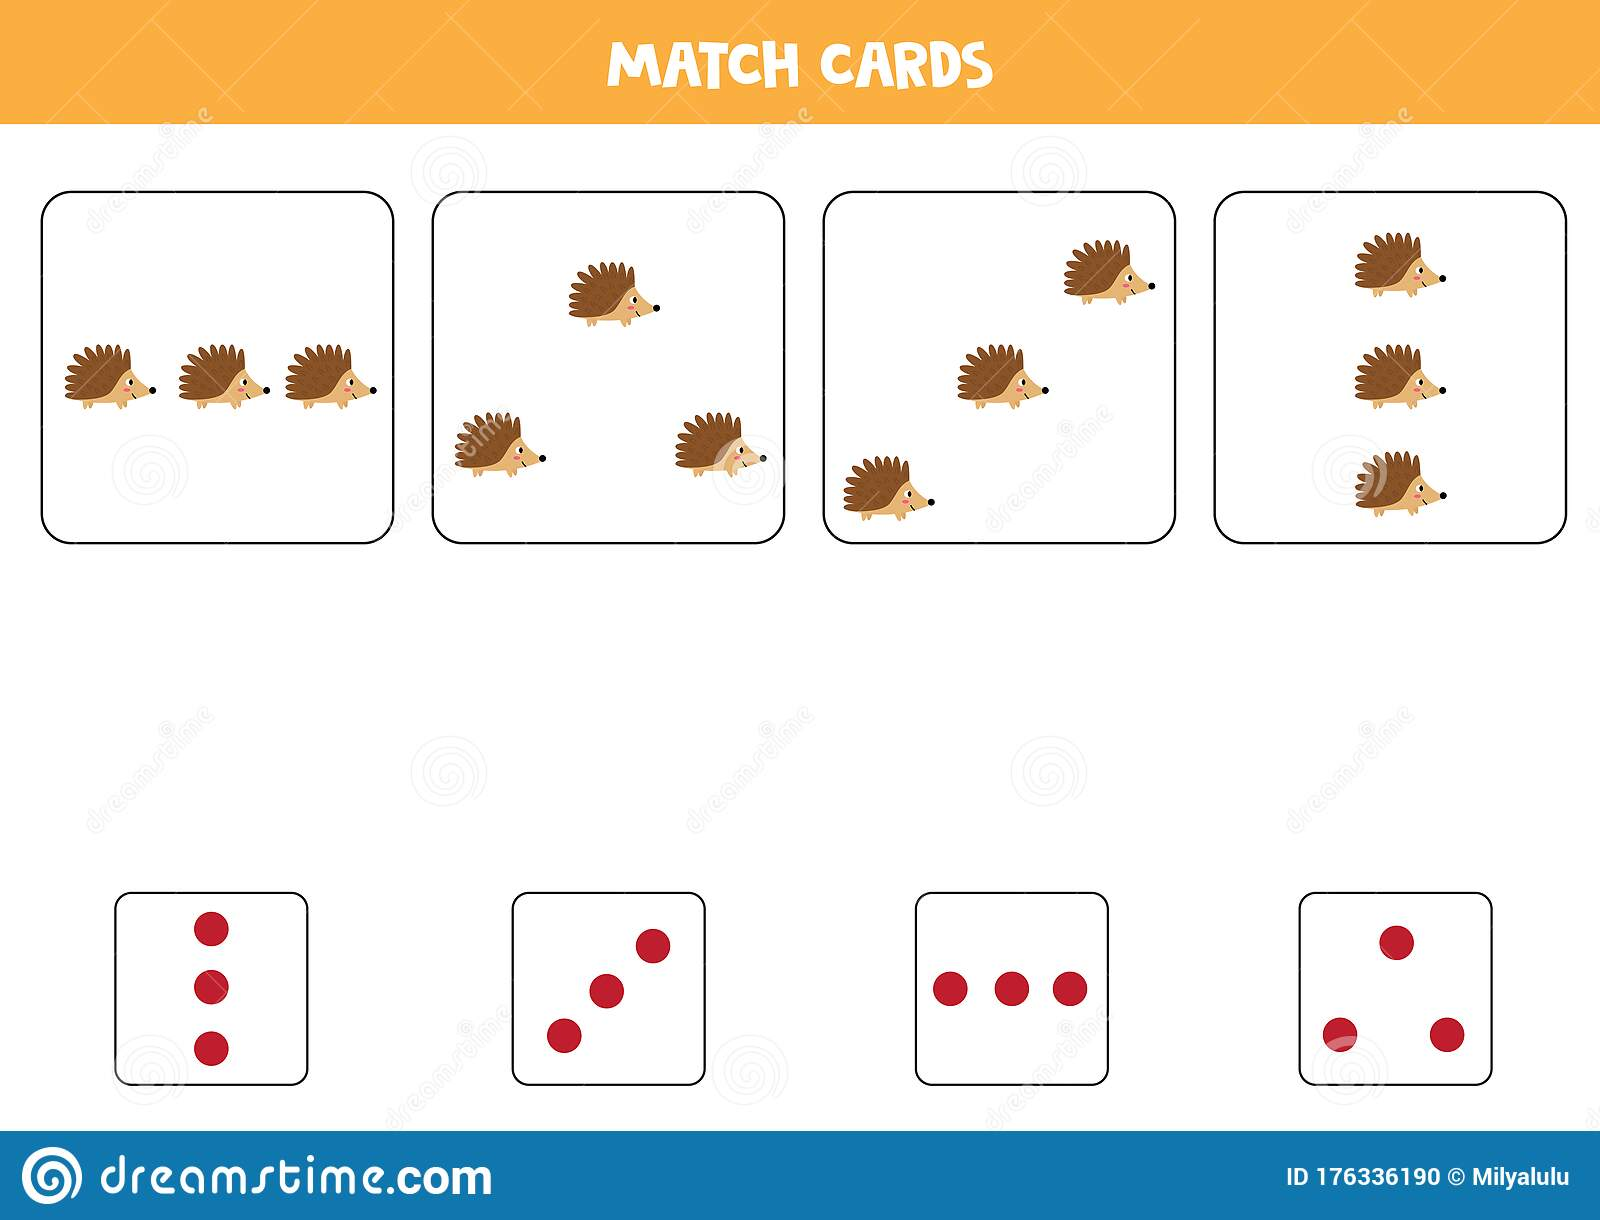 Match Cute Cartoon Hedgehogs And Cards With Dots Stock